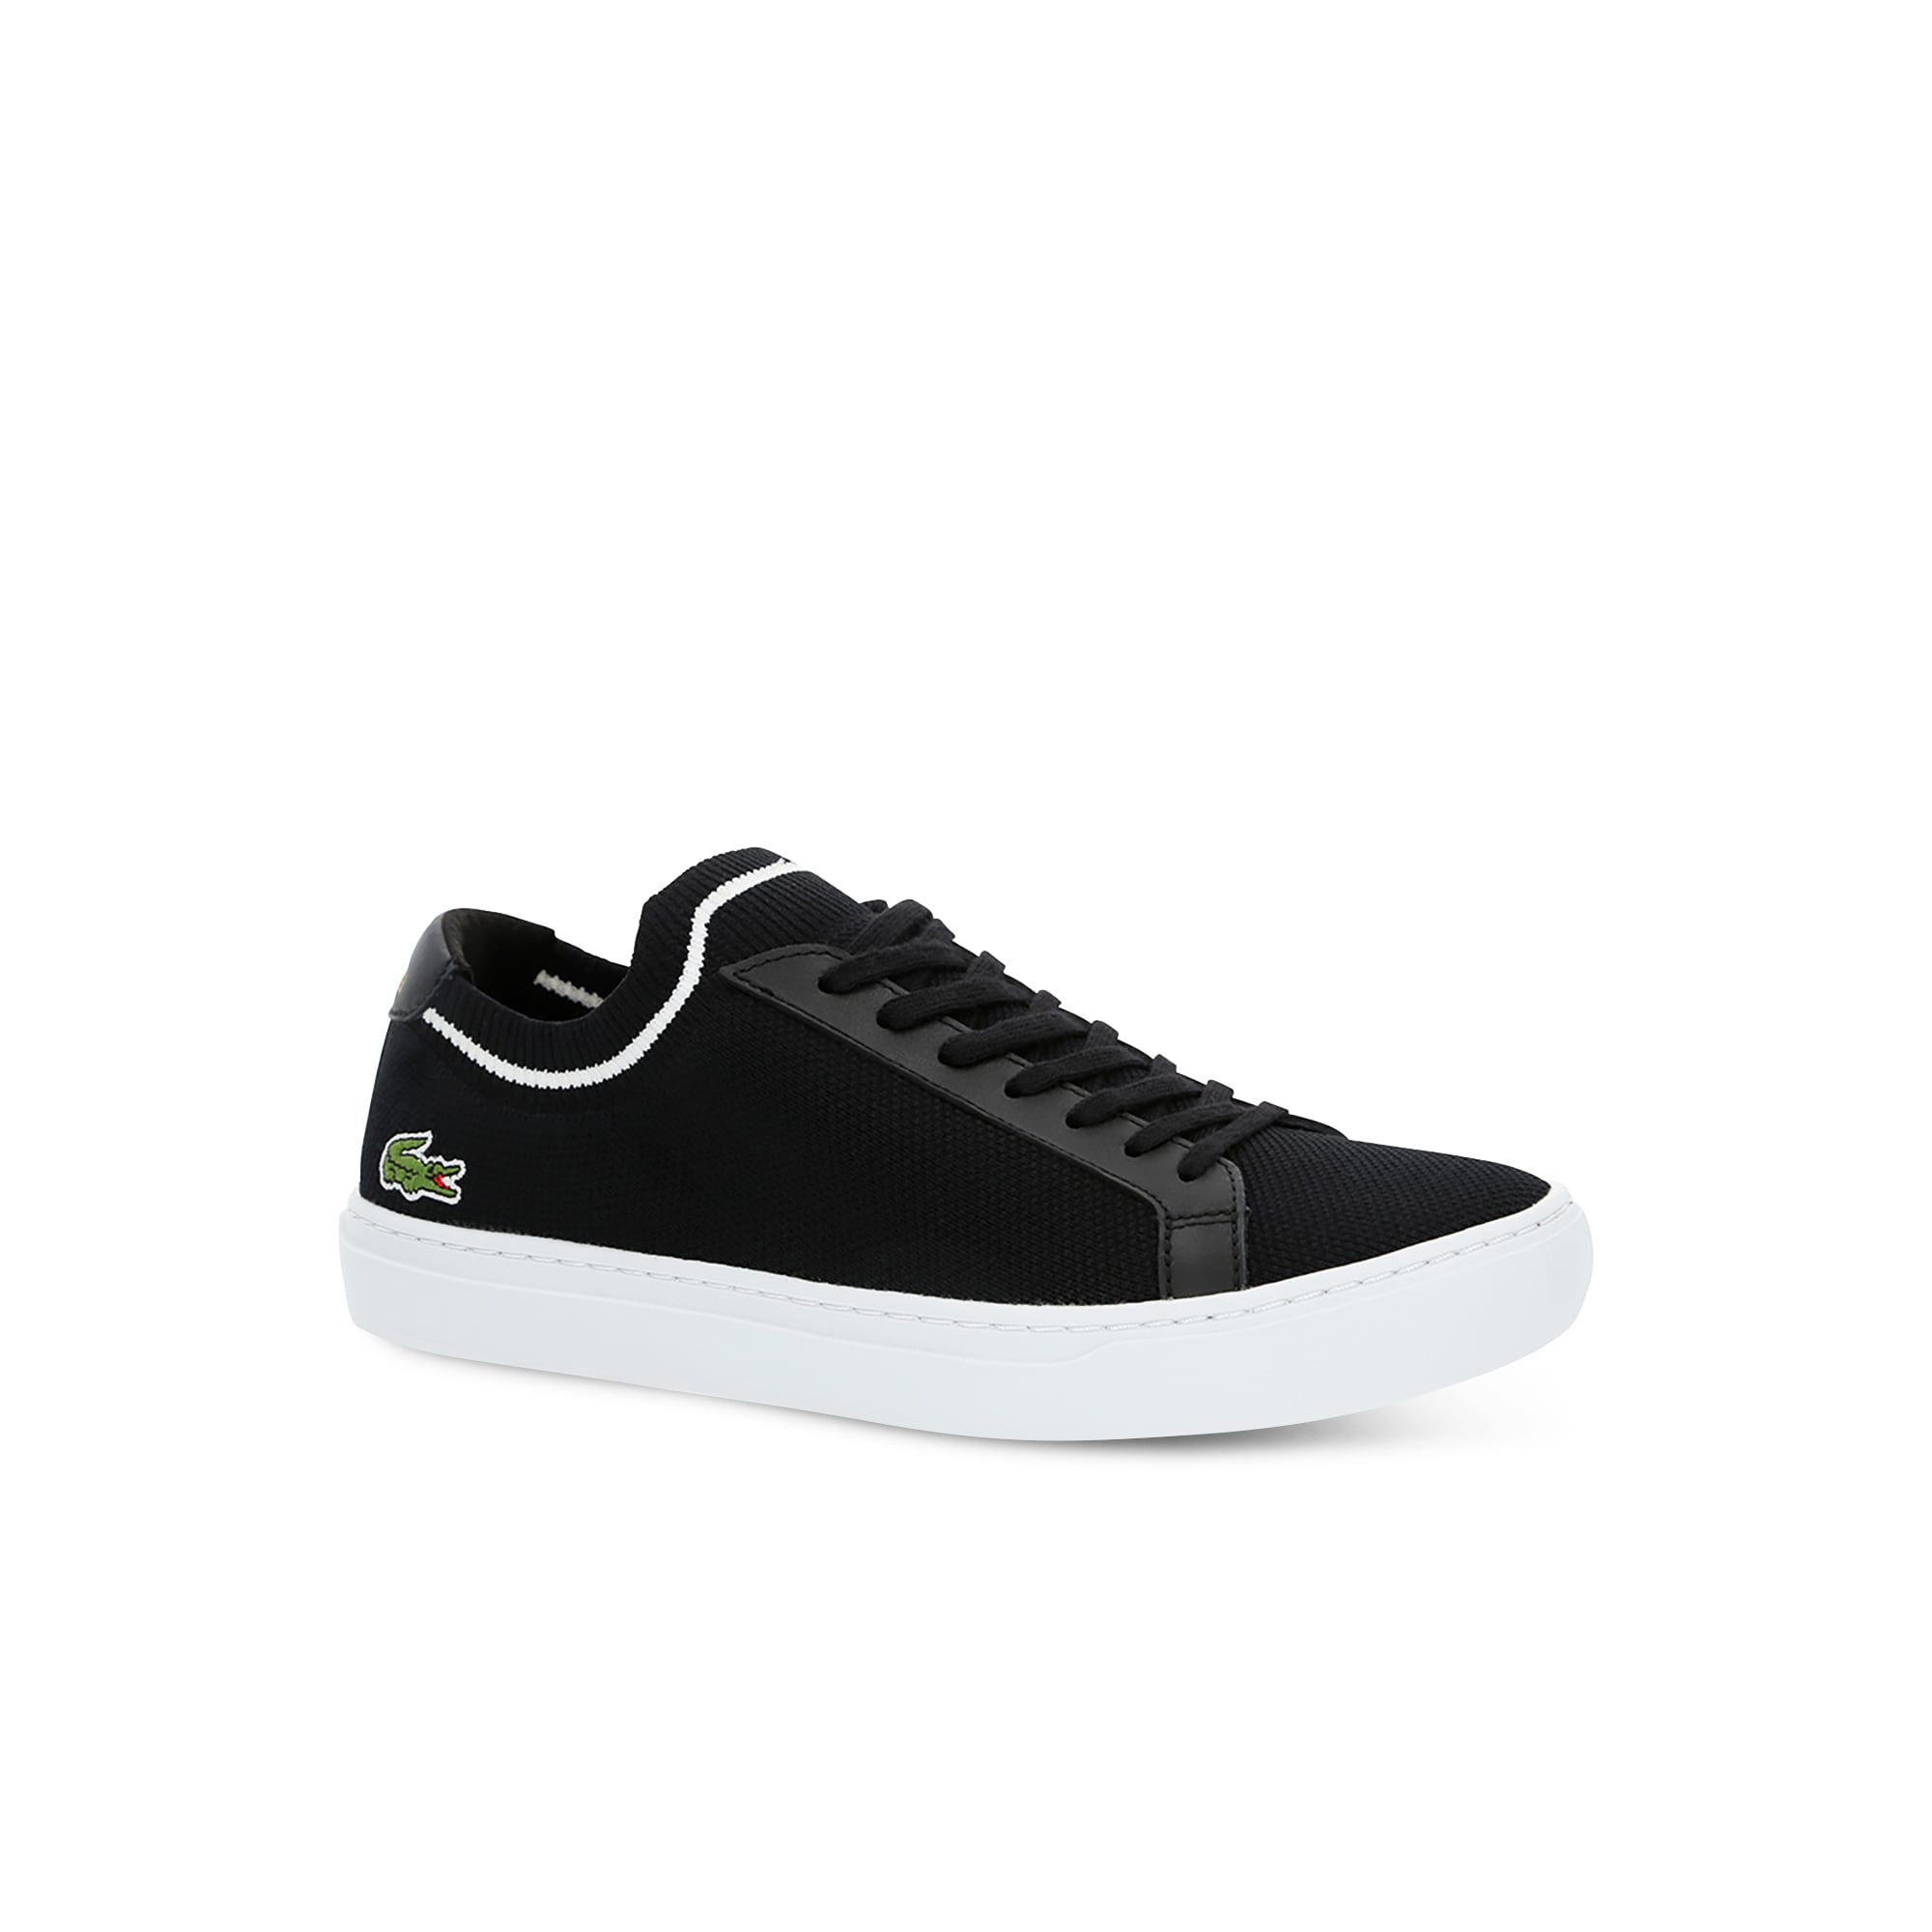 Lacoste shoes for men  Sneakers fb4e45f00f7a